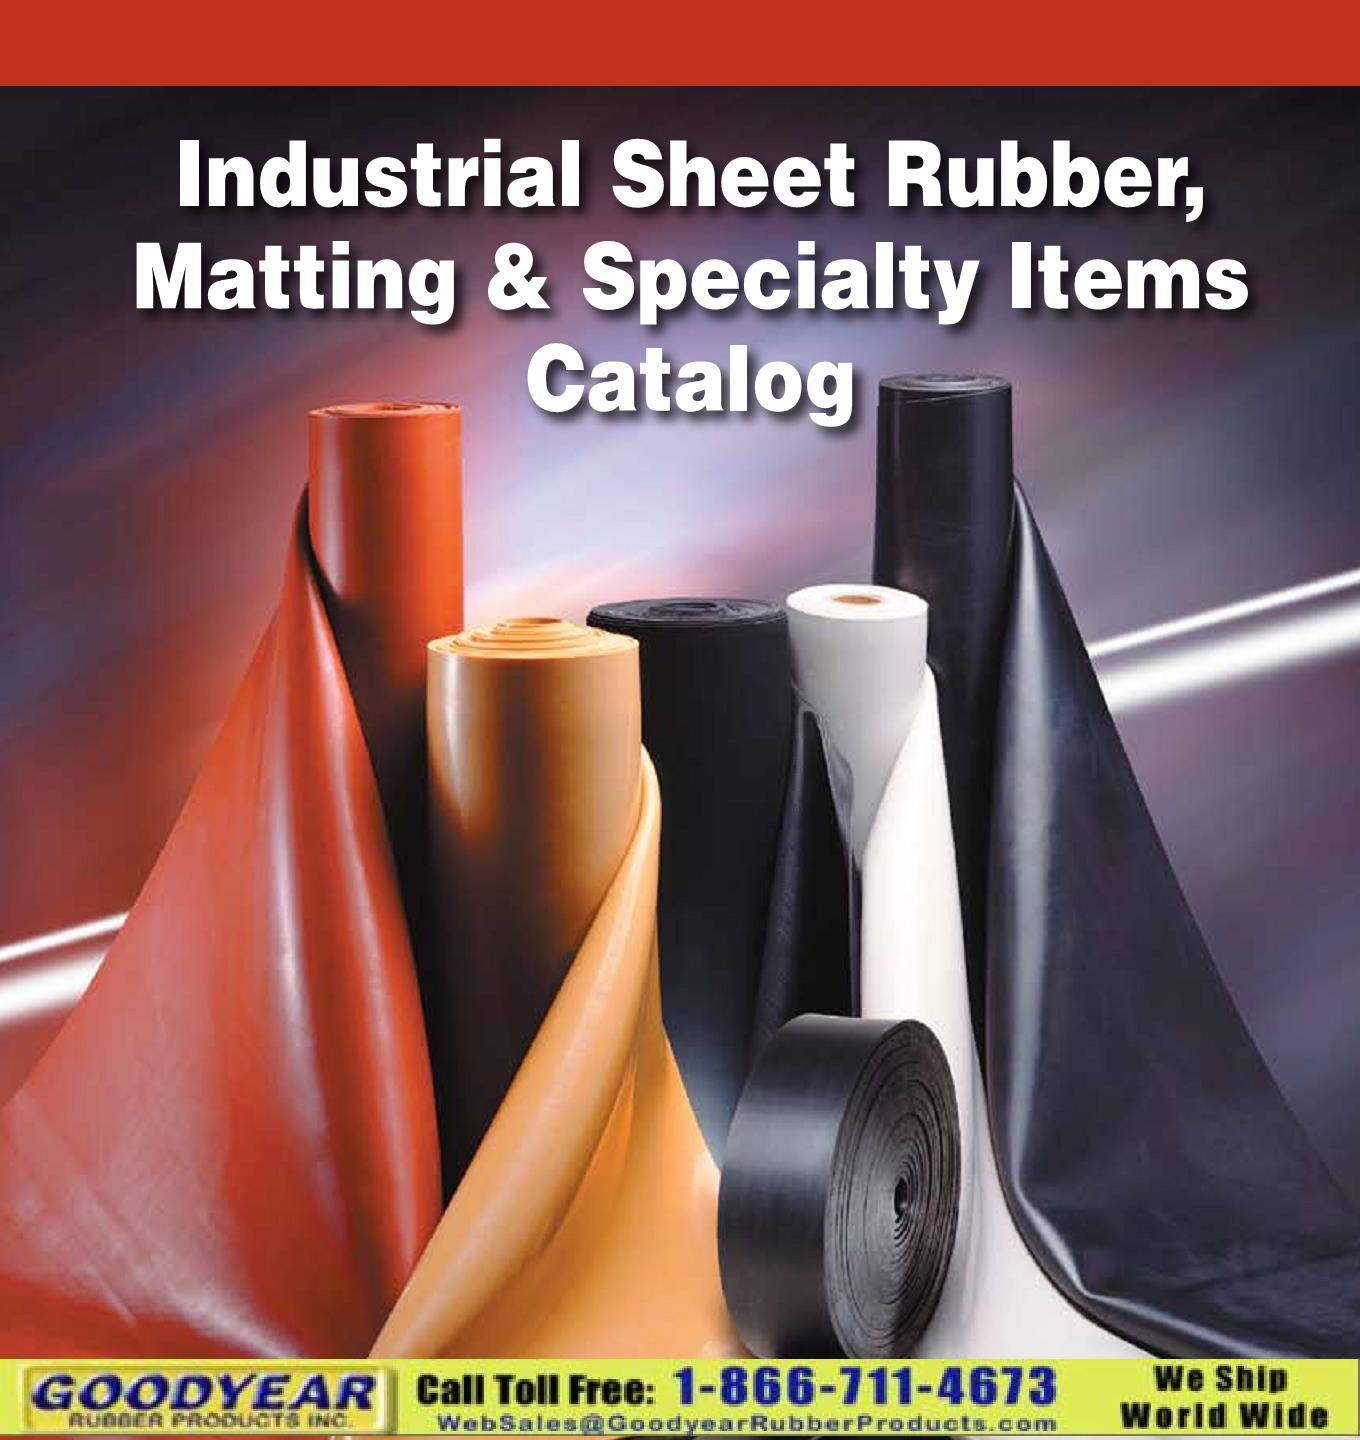 Sheet Rubber Catalog